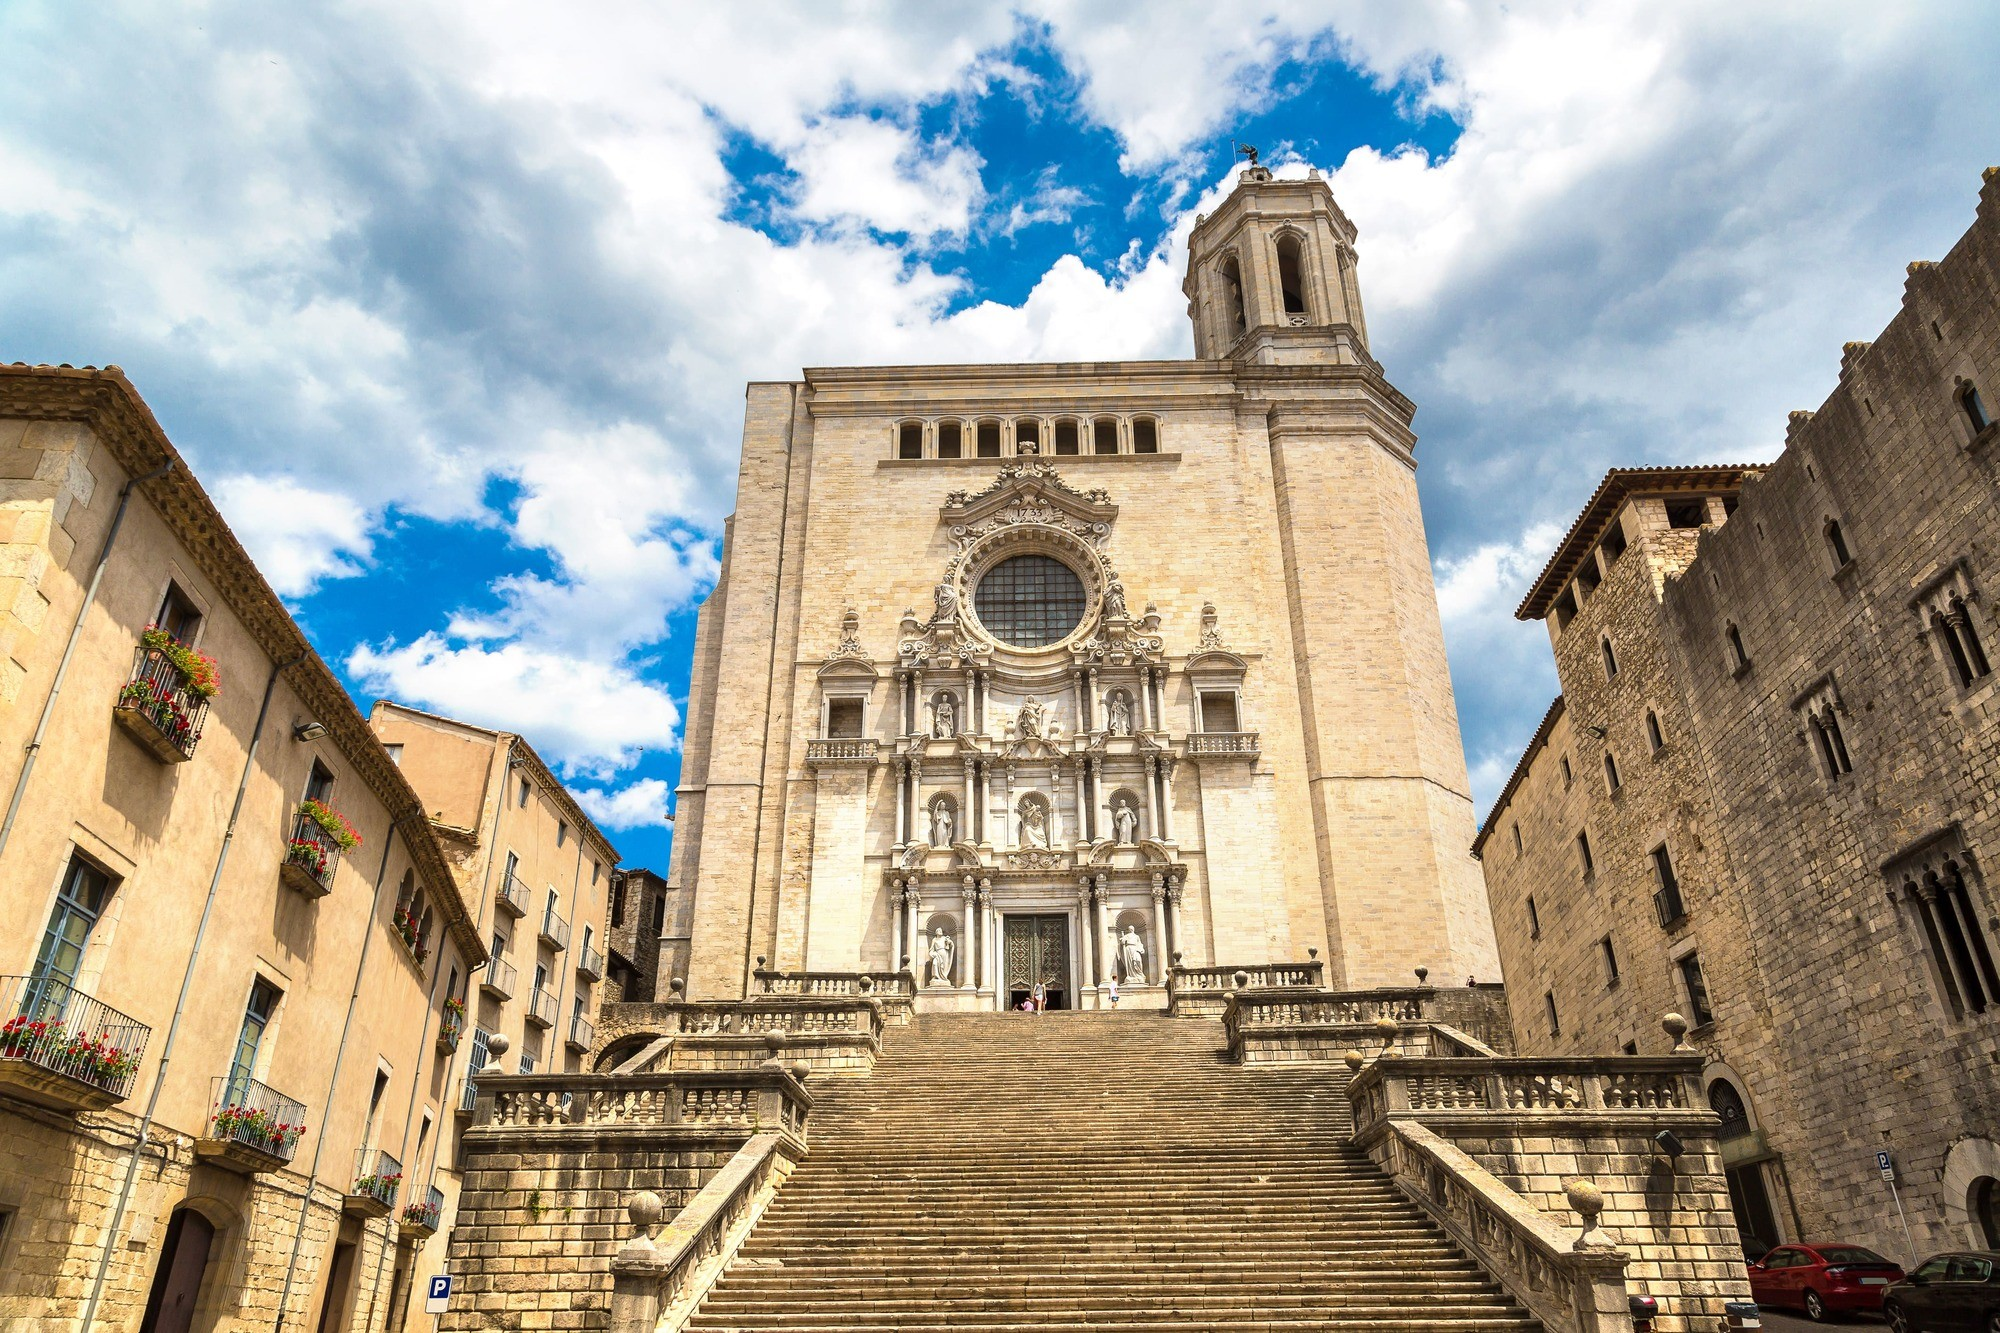 steps leading up to large stone cathedral with blue sky and clouds behind